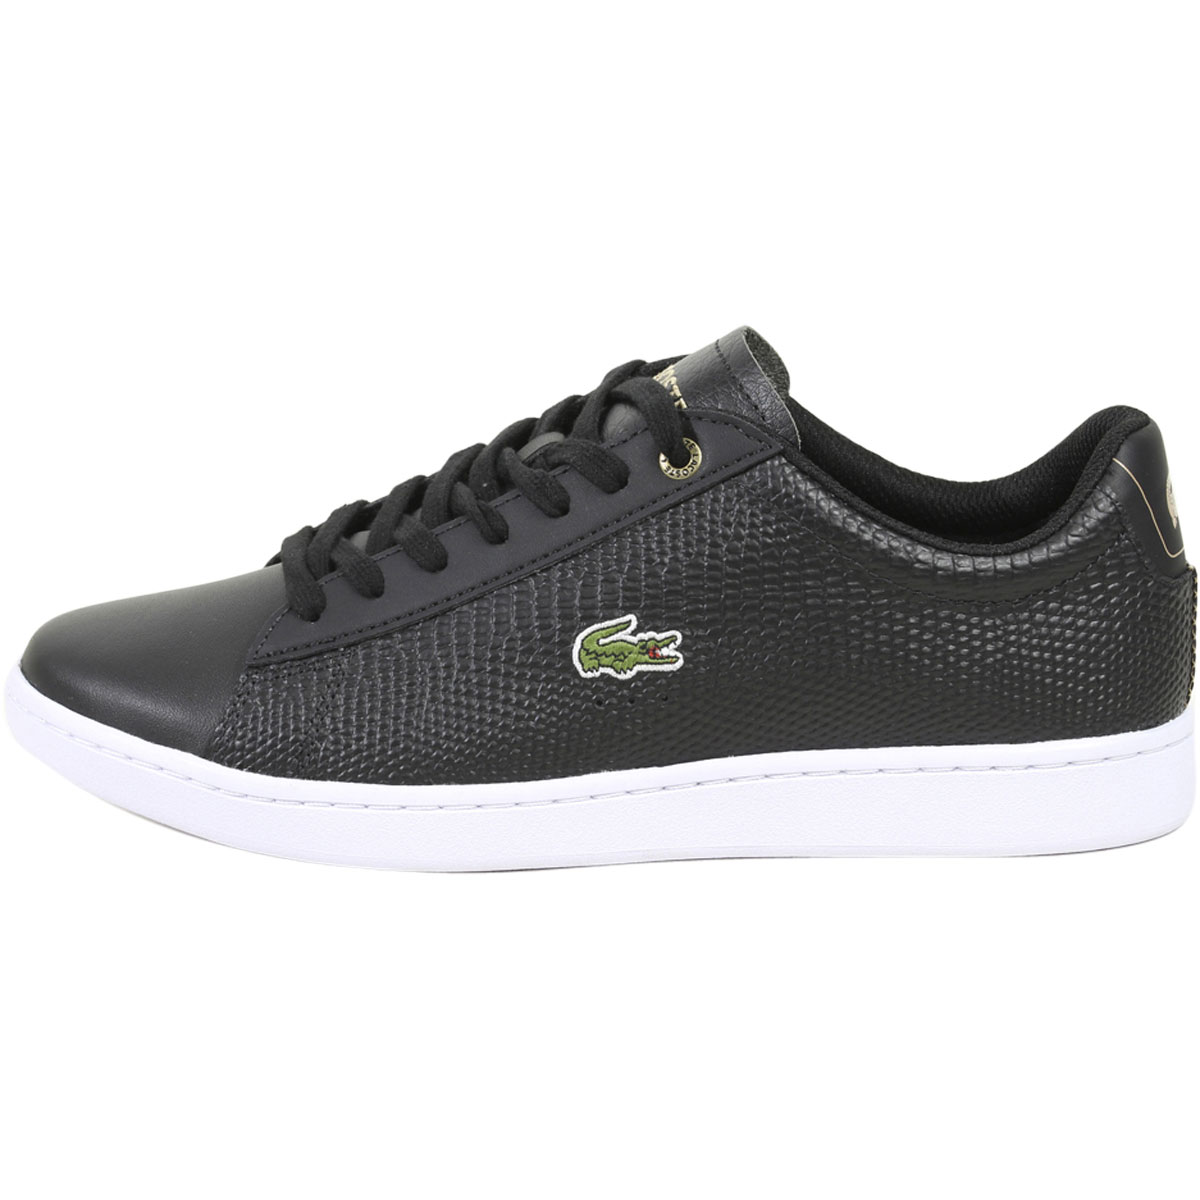 Lacoste-Men-039-s-Carnaby-EVO-118-Trainers-Sneakers-Shoes thumbnail 10